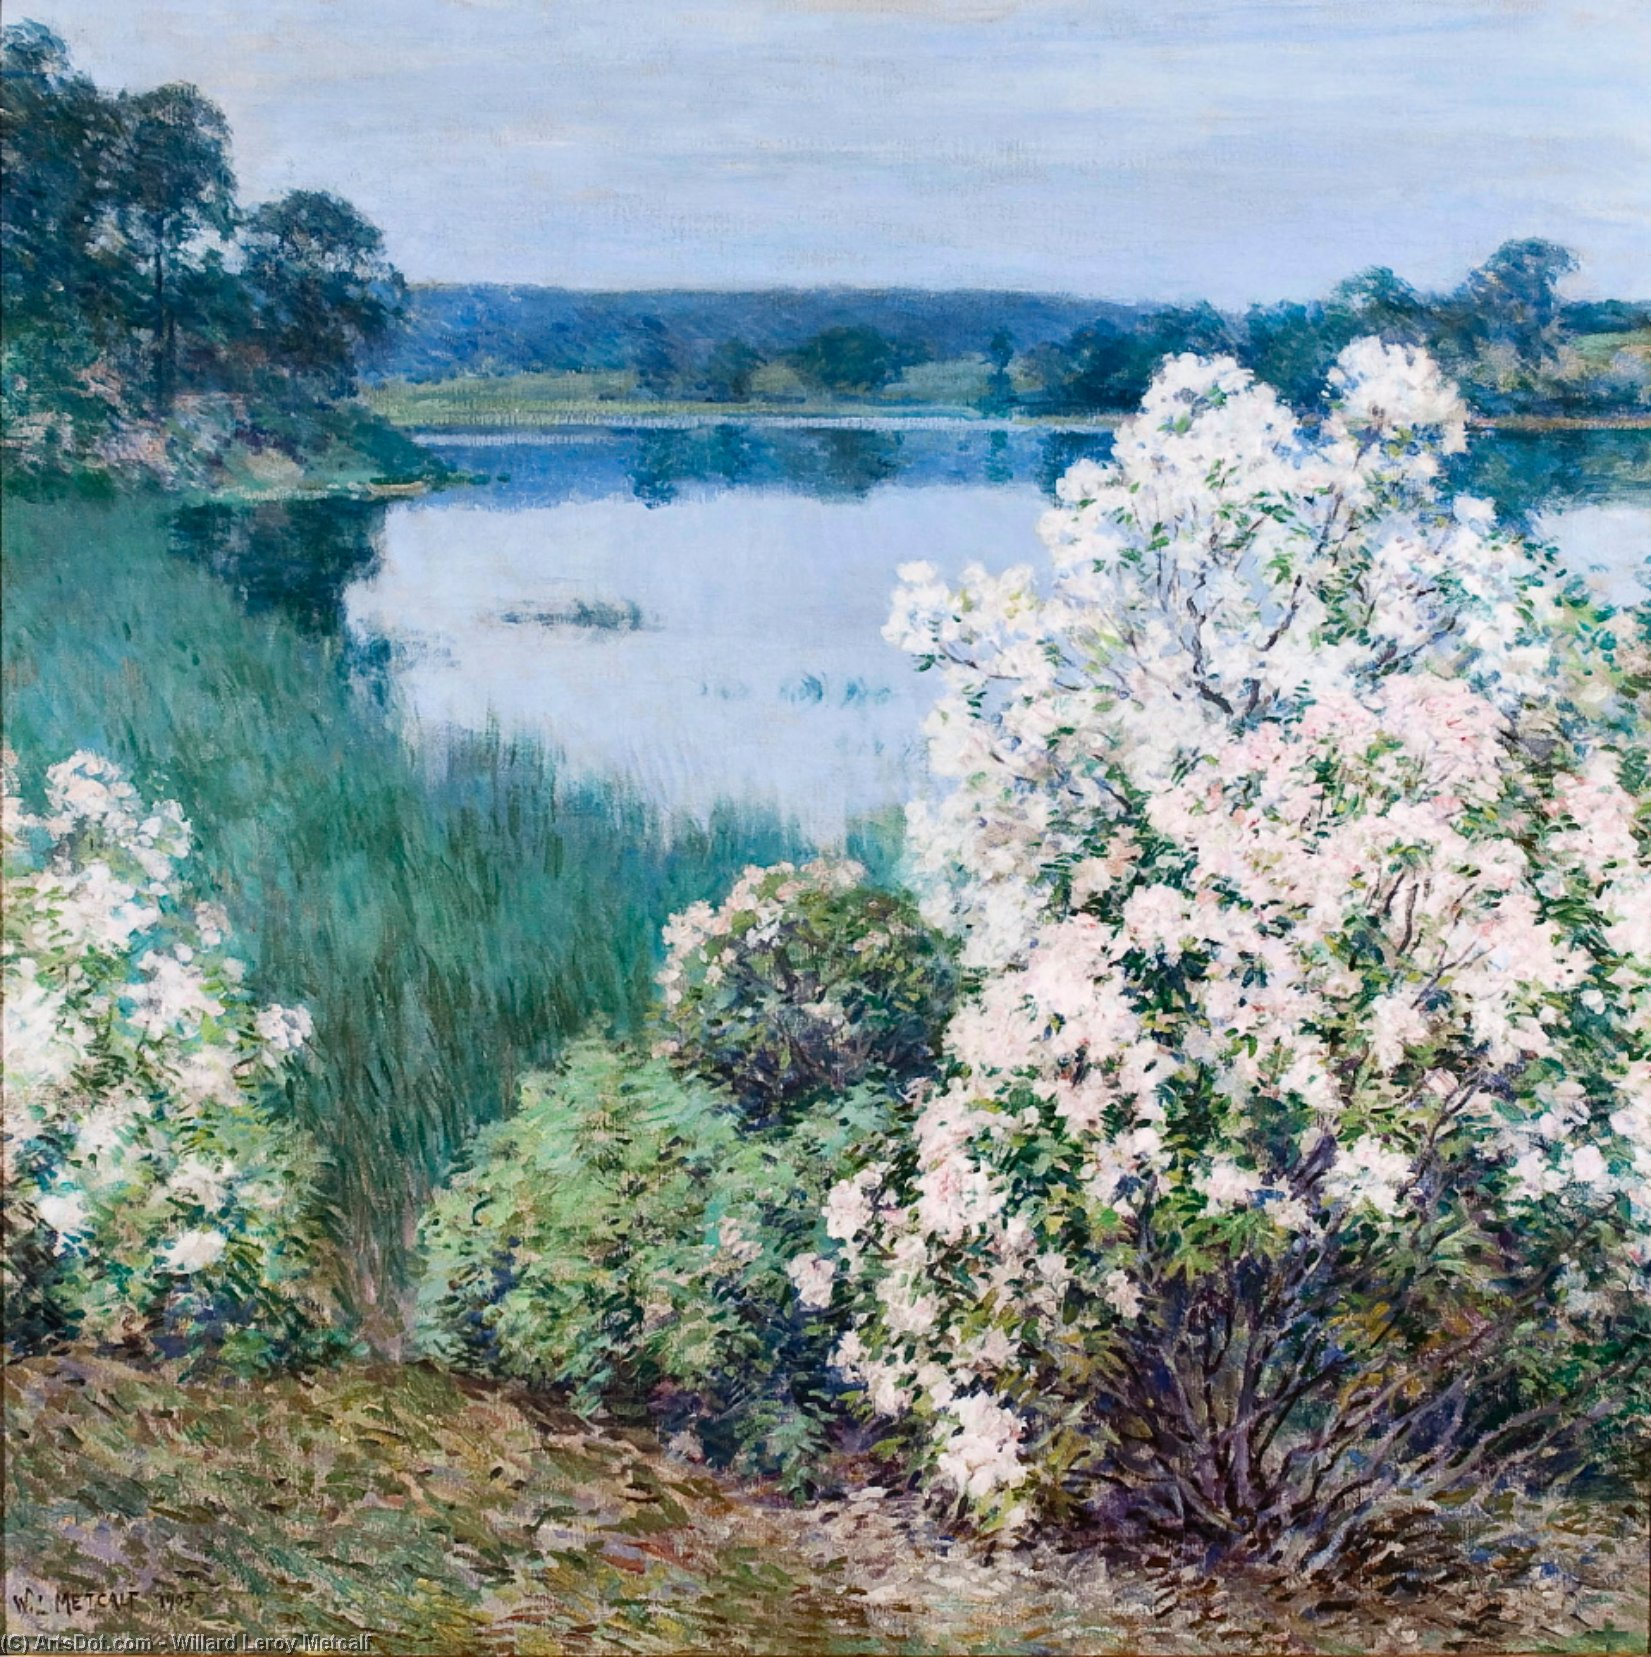 Order Art Reproduction : Kalmia, 1912 by Willard Leroy Metcalf (1858-1925, United States) | ArtsDot.com